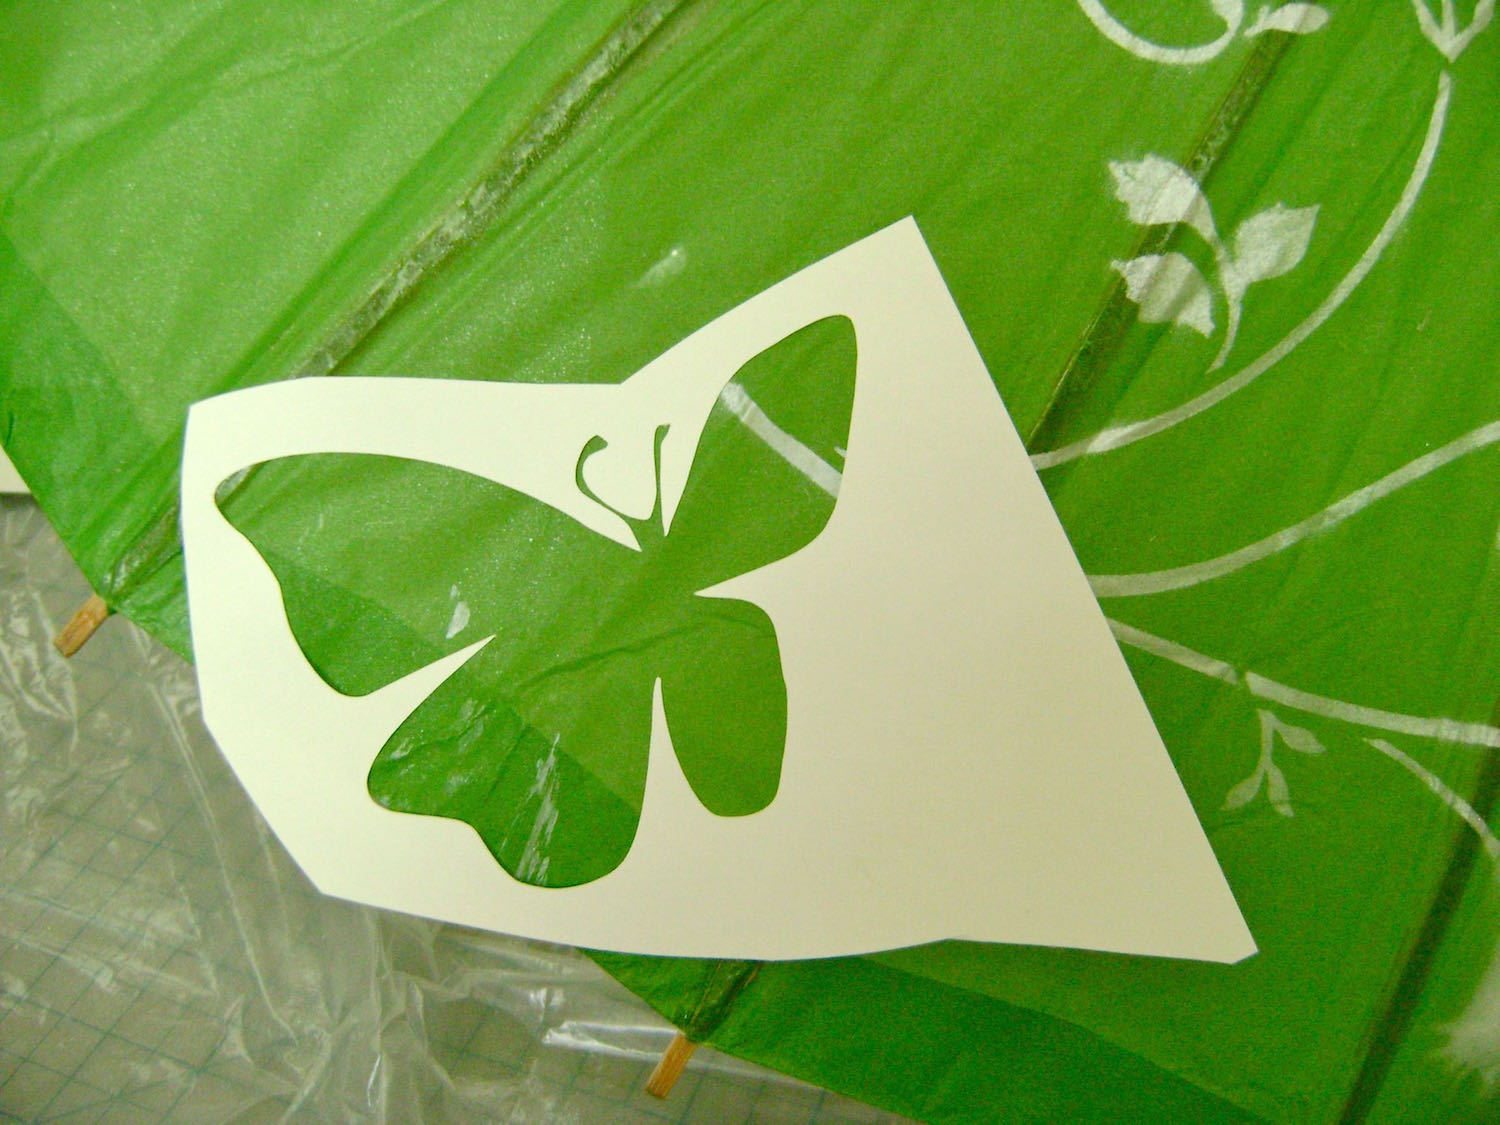 step 4 -Download and print out the butterfly stencils on card stock.  Cut out the images and spray the backside with adhesive.  Position one butterfly in each parasol section, alternating small and large and their placement on the parasol.